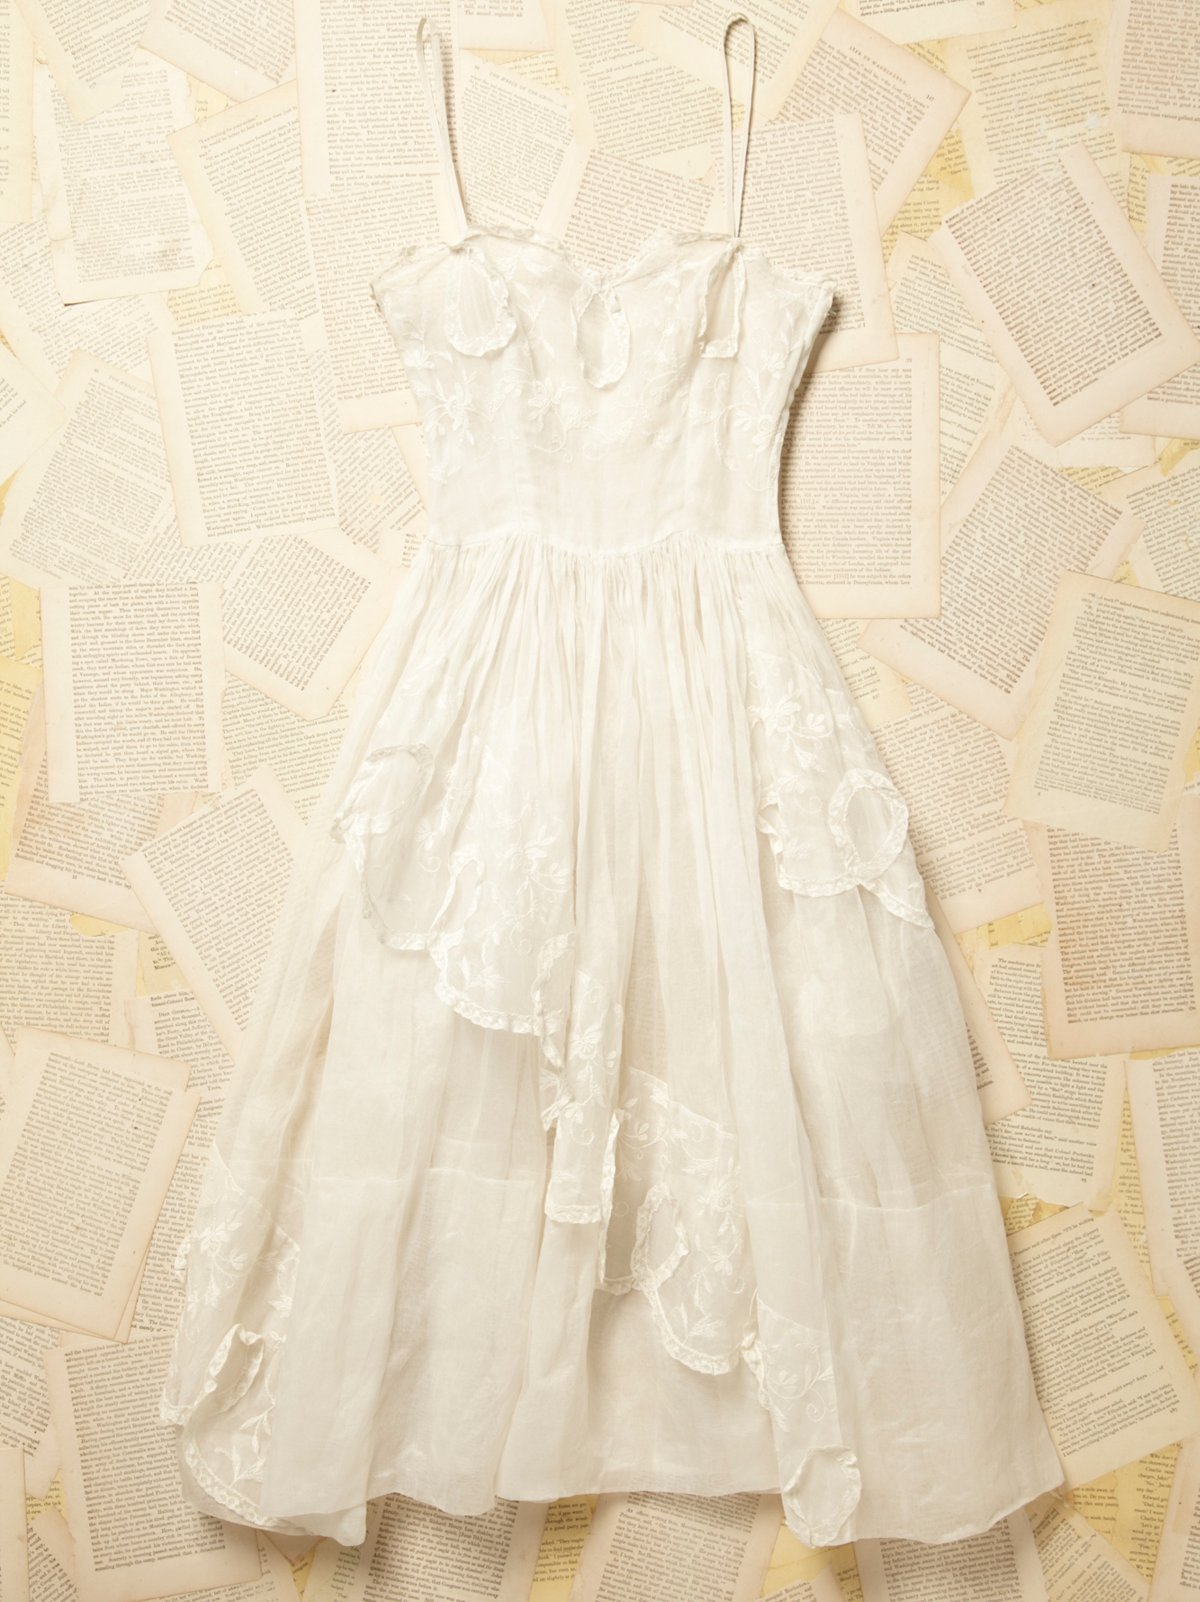 Vintage 1950s White Lace Dress